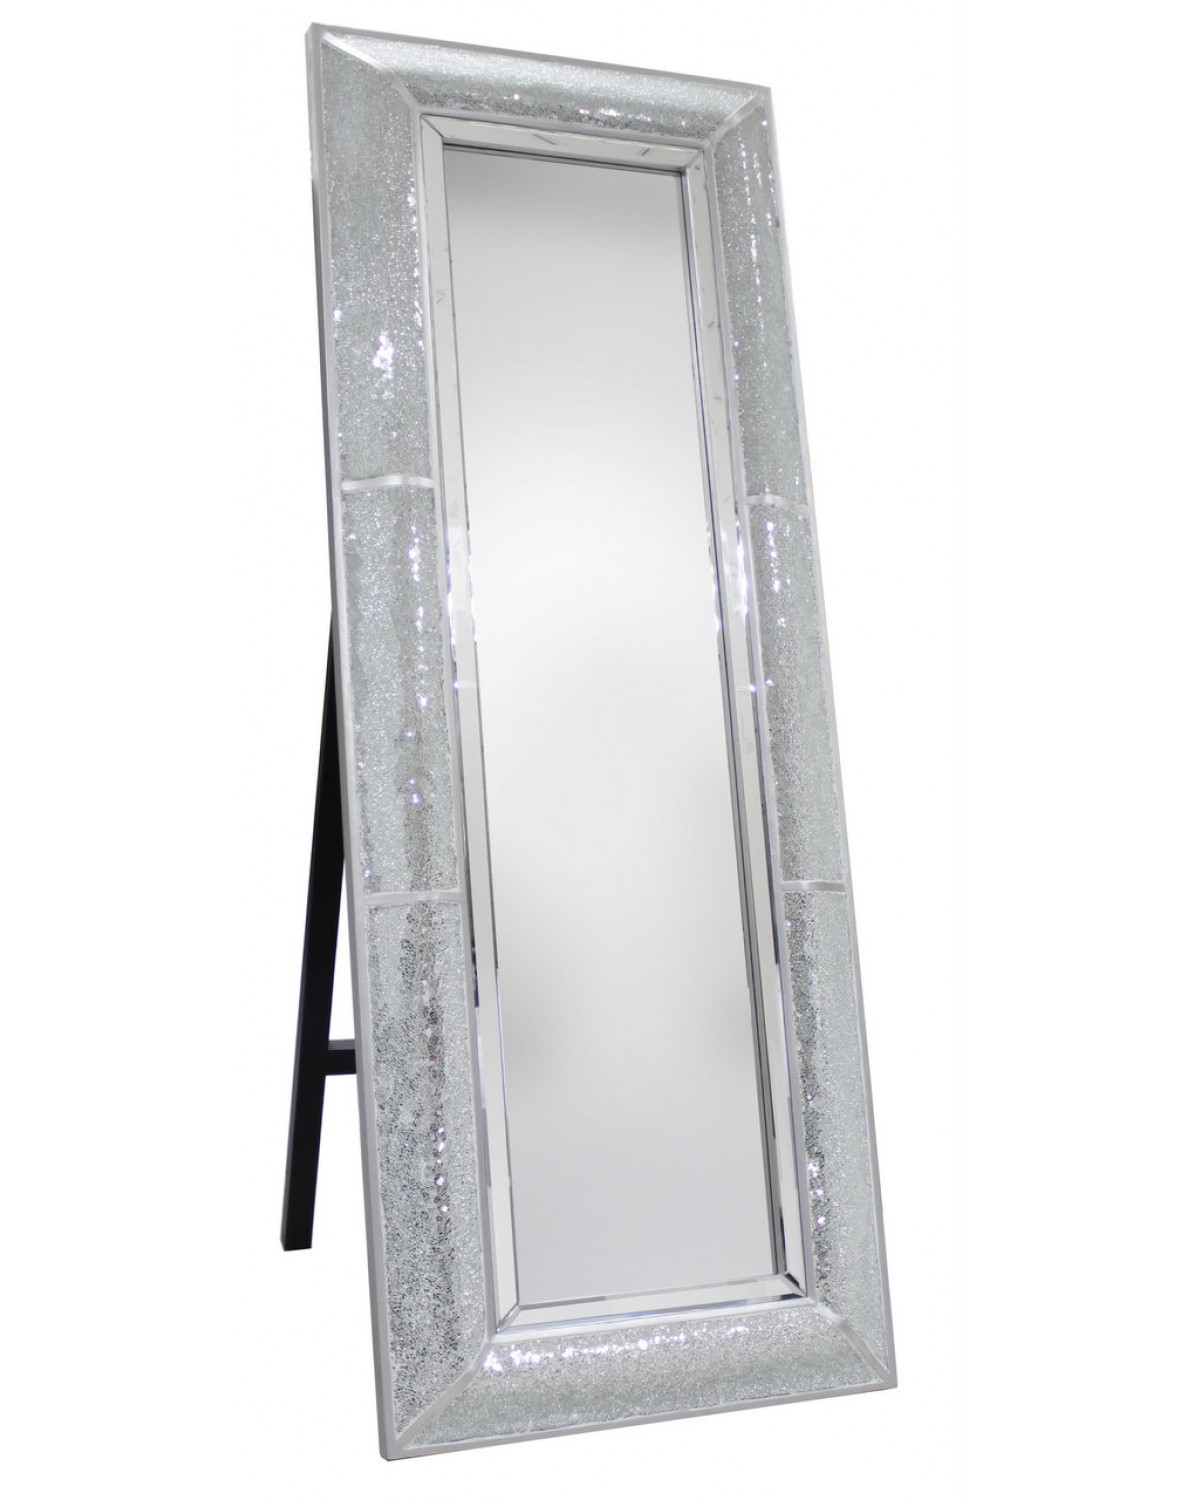 Chic floor length mirrors ornate ornament mirror frame can be place at your beautiful bedroom Ideas